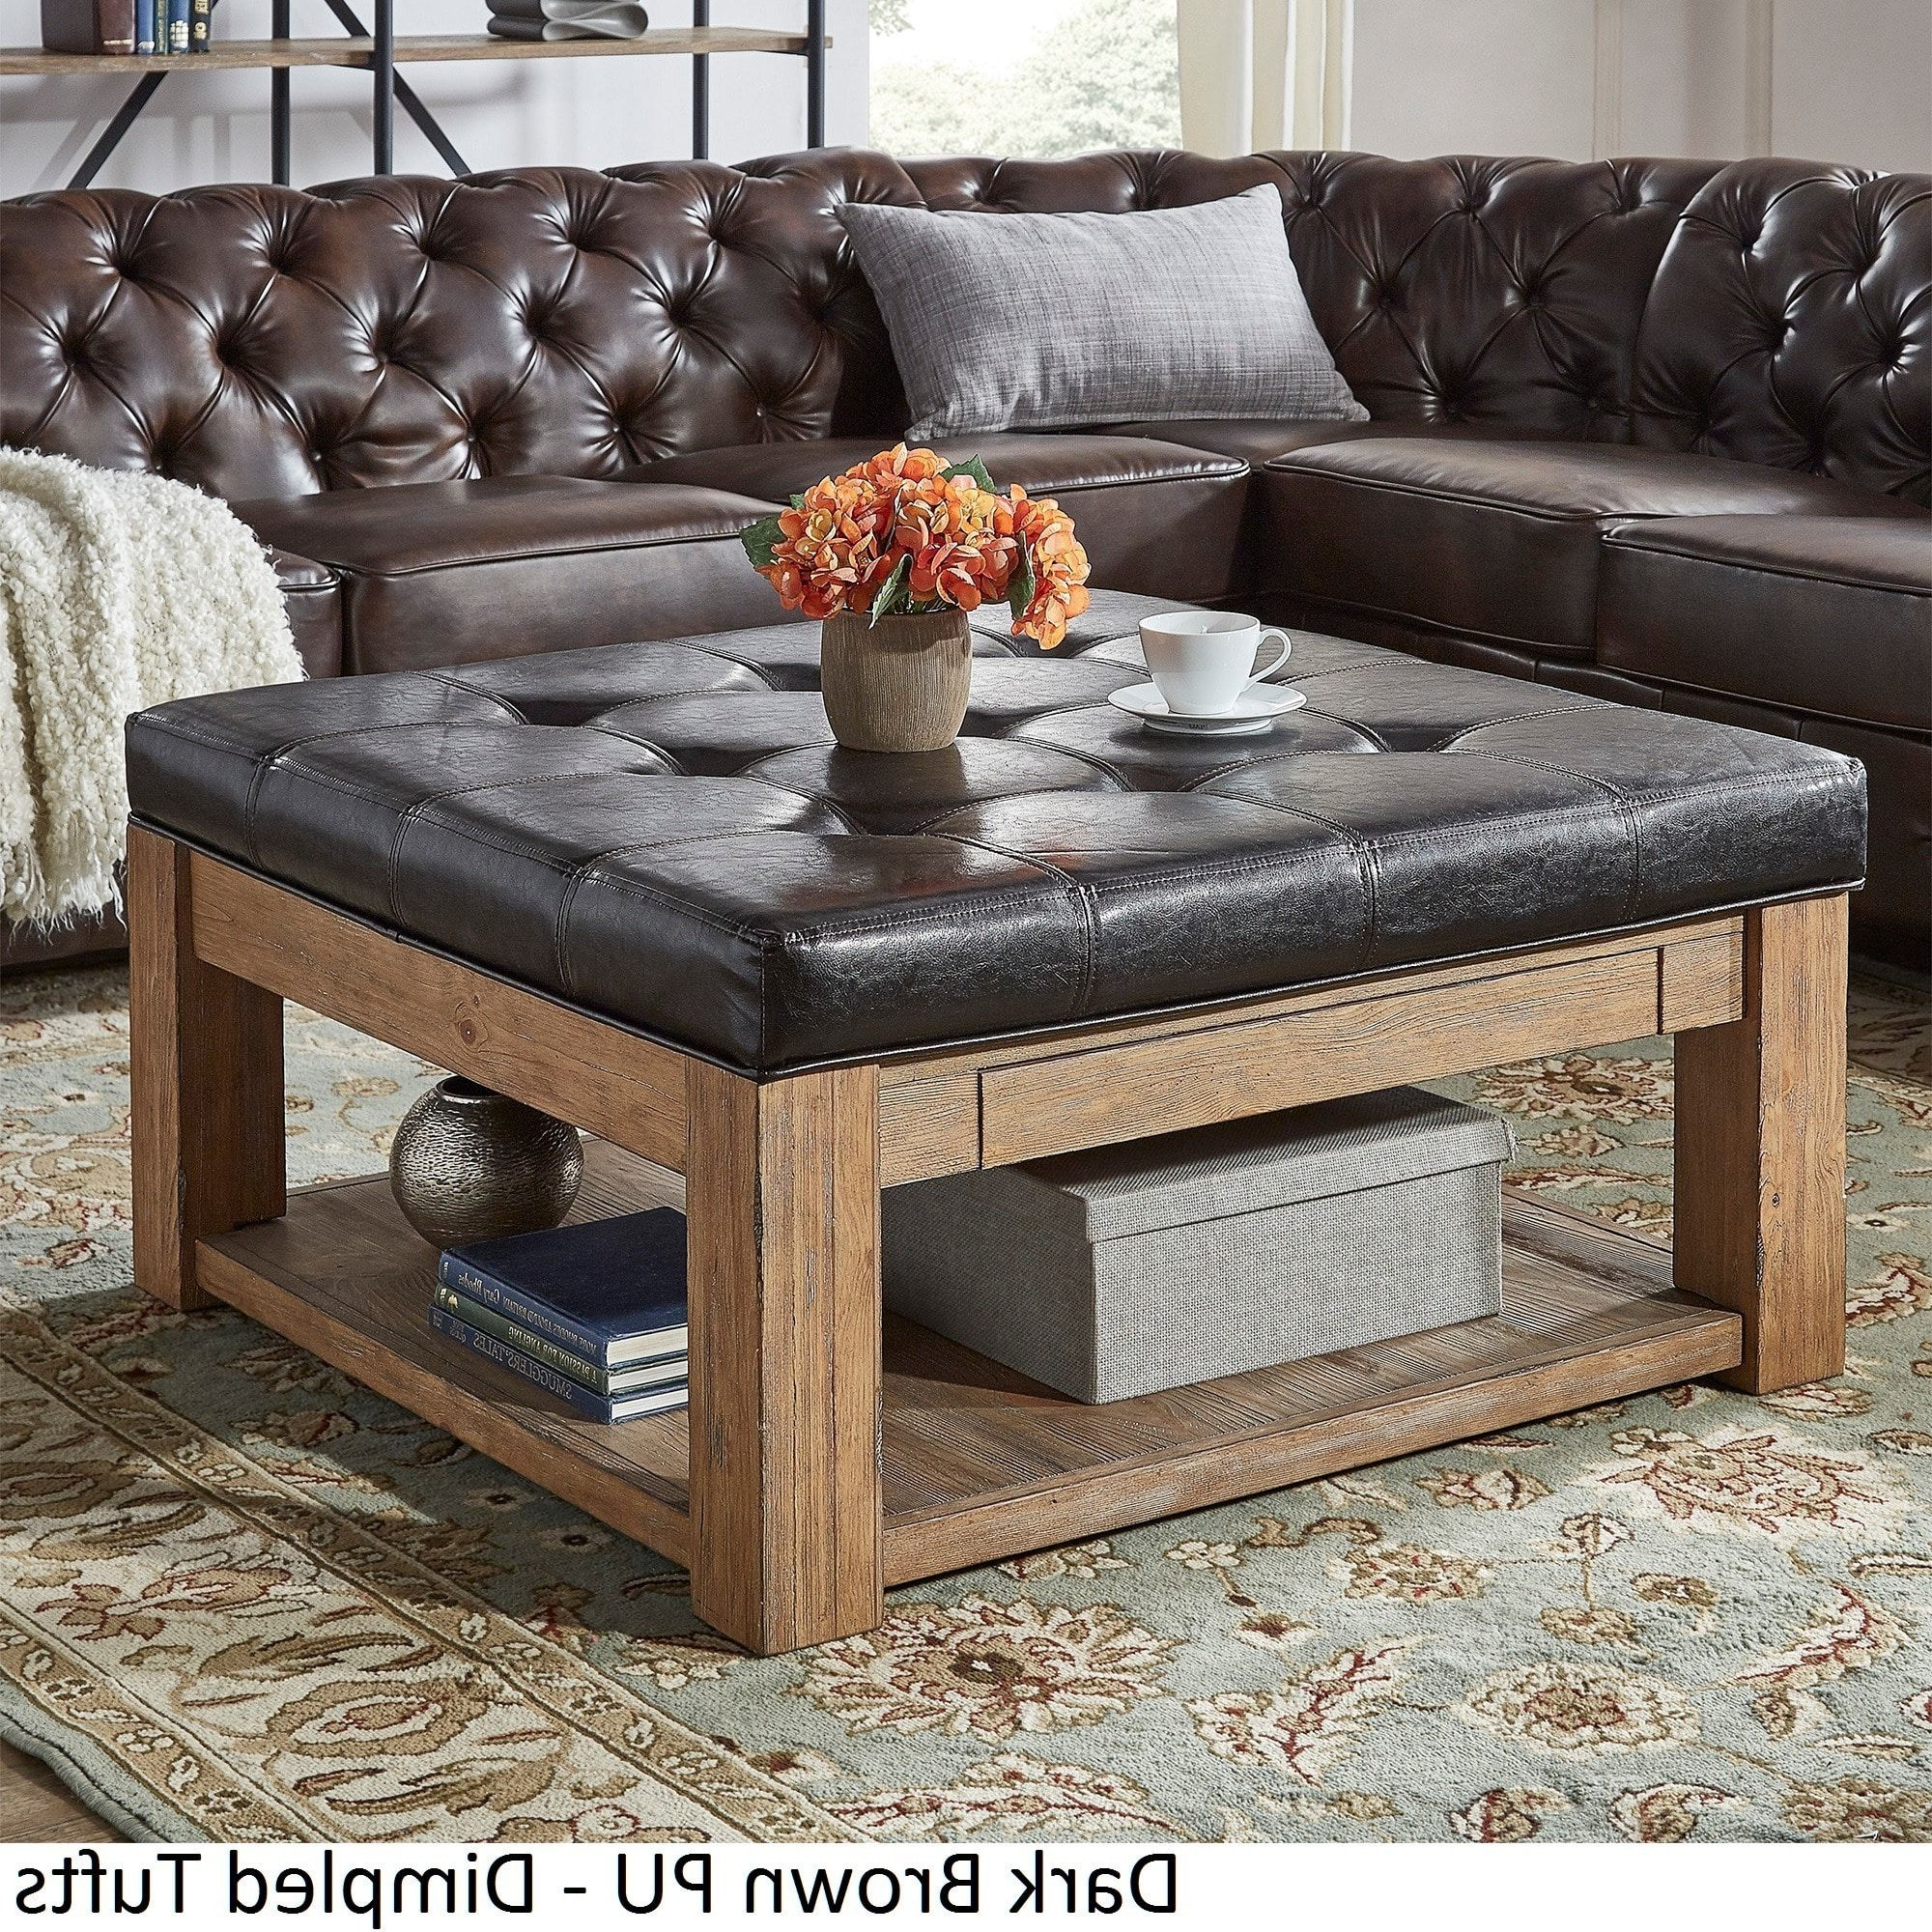 Most Popular Lennon Pine Square Storage Ottoman Coffee Tables Throughout Lennon Pine Square Storage Ottoman Coffee Tableinspire Q (View 5 of 20)